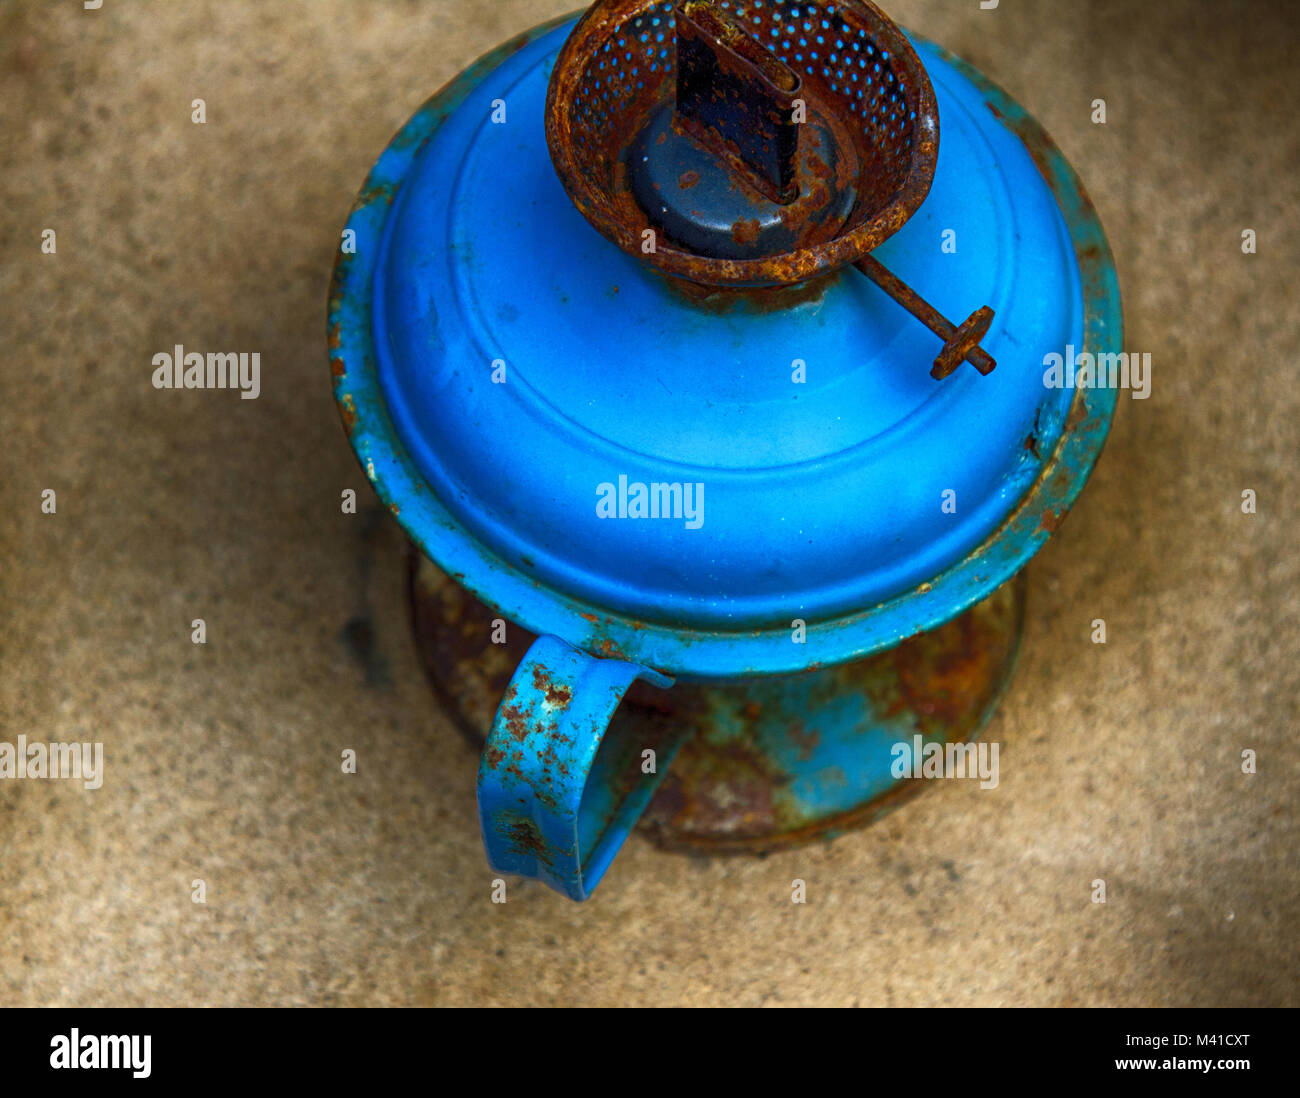 Everyday objects in the Museum and the abandoned old houses. Old blue kerosene lamp without glass - Stock Image